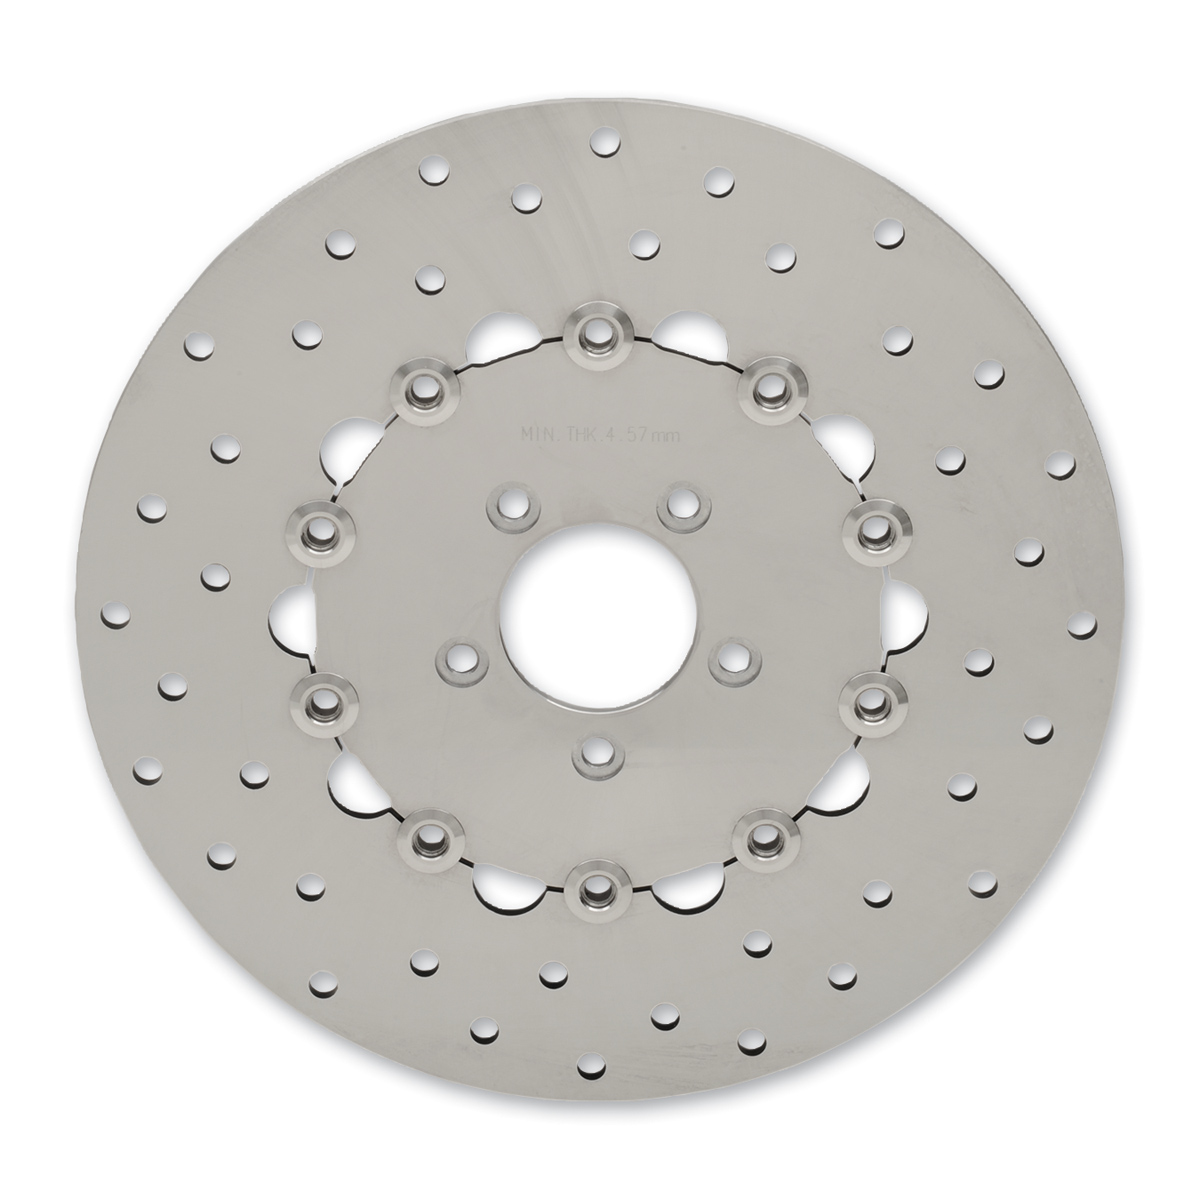 J&P Cycles Dyna Stainless Front Brake Rotor - 210-868